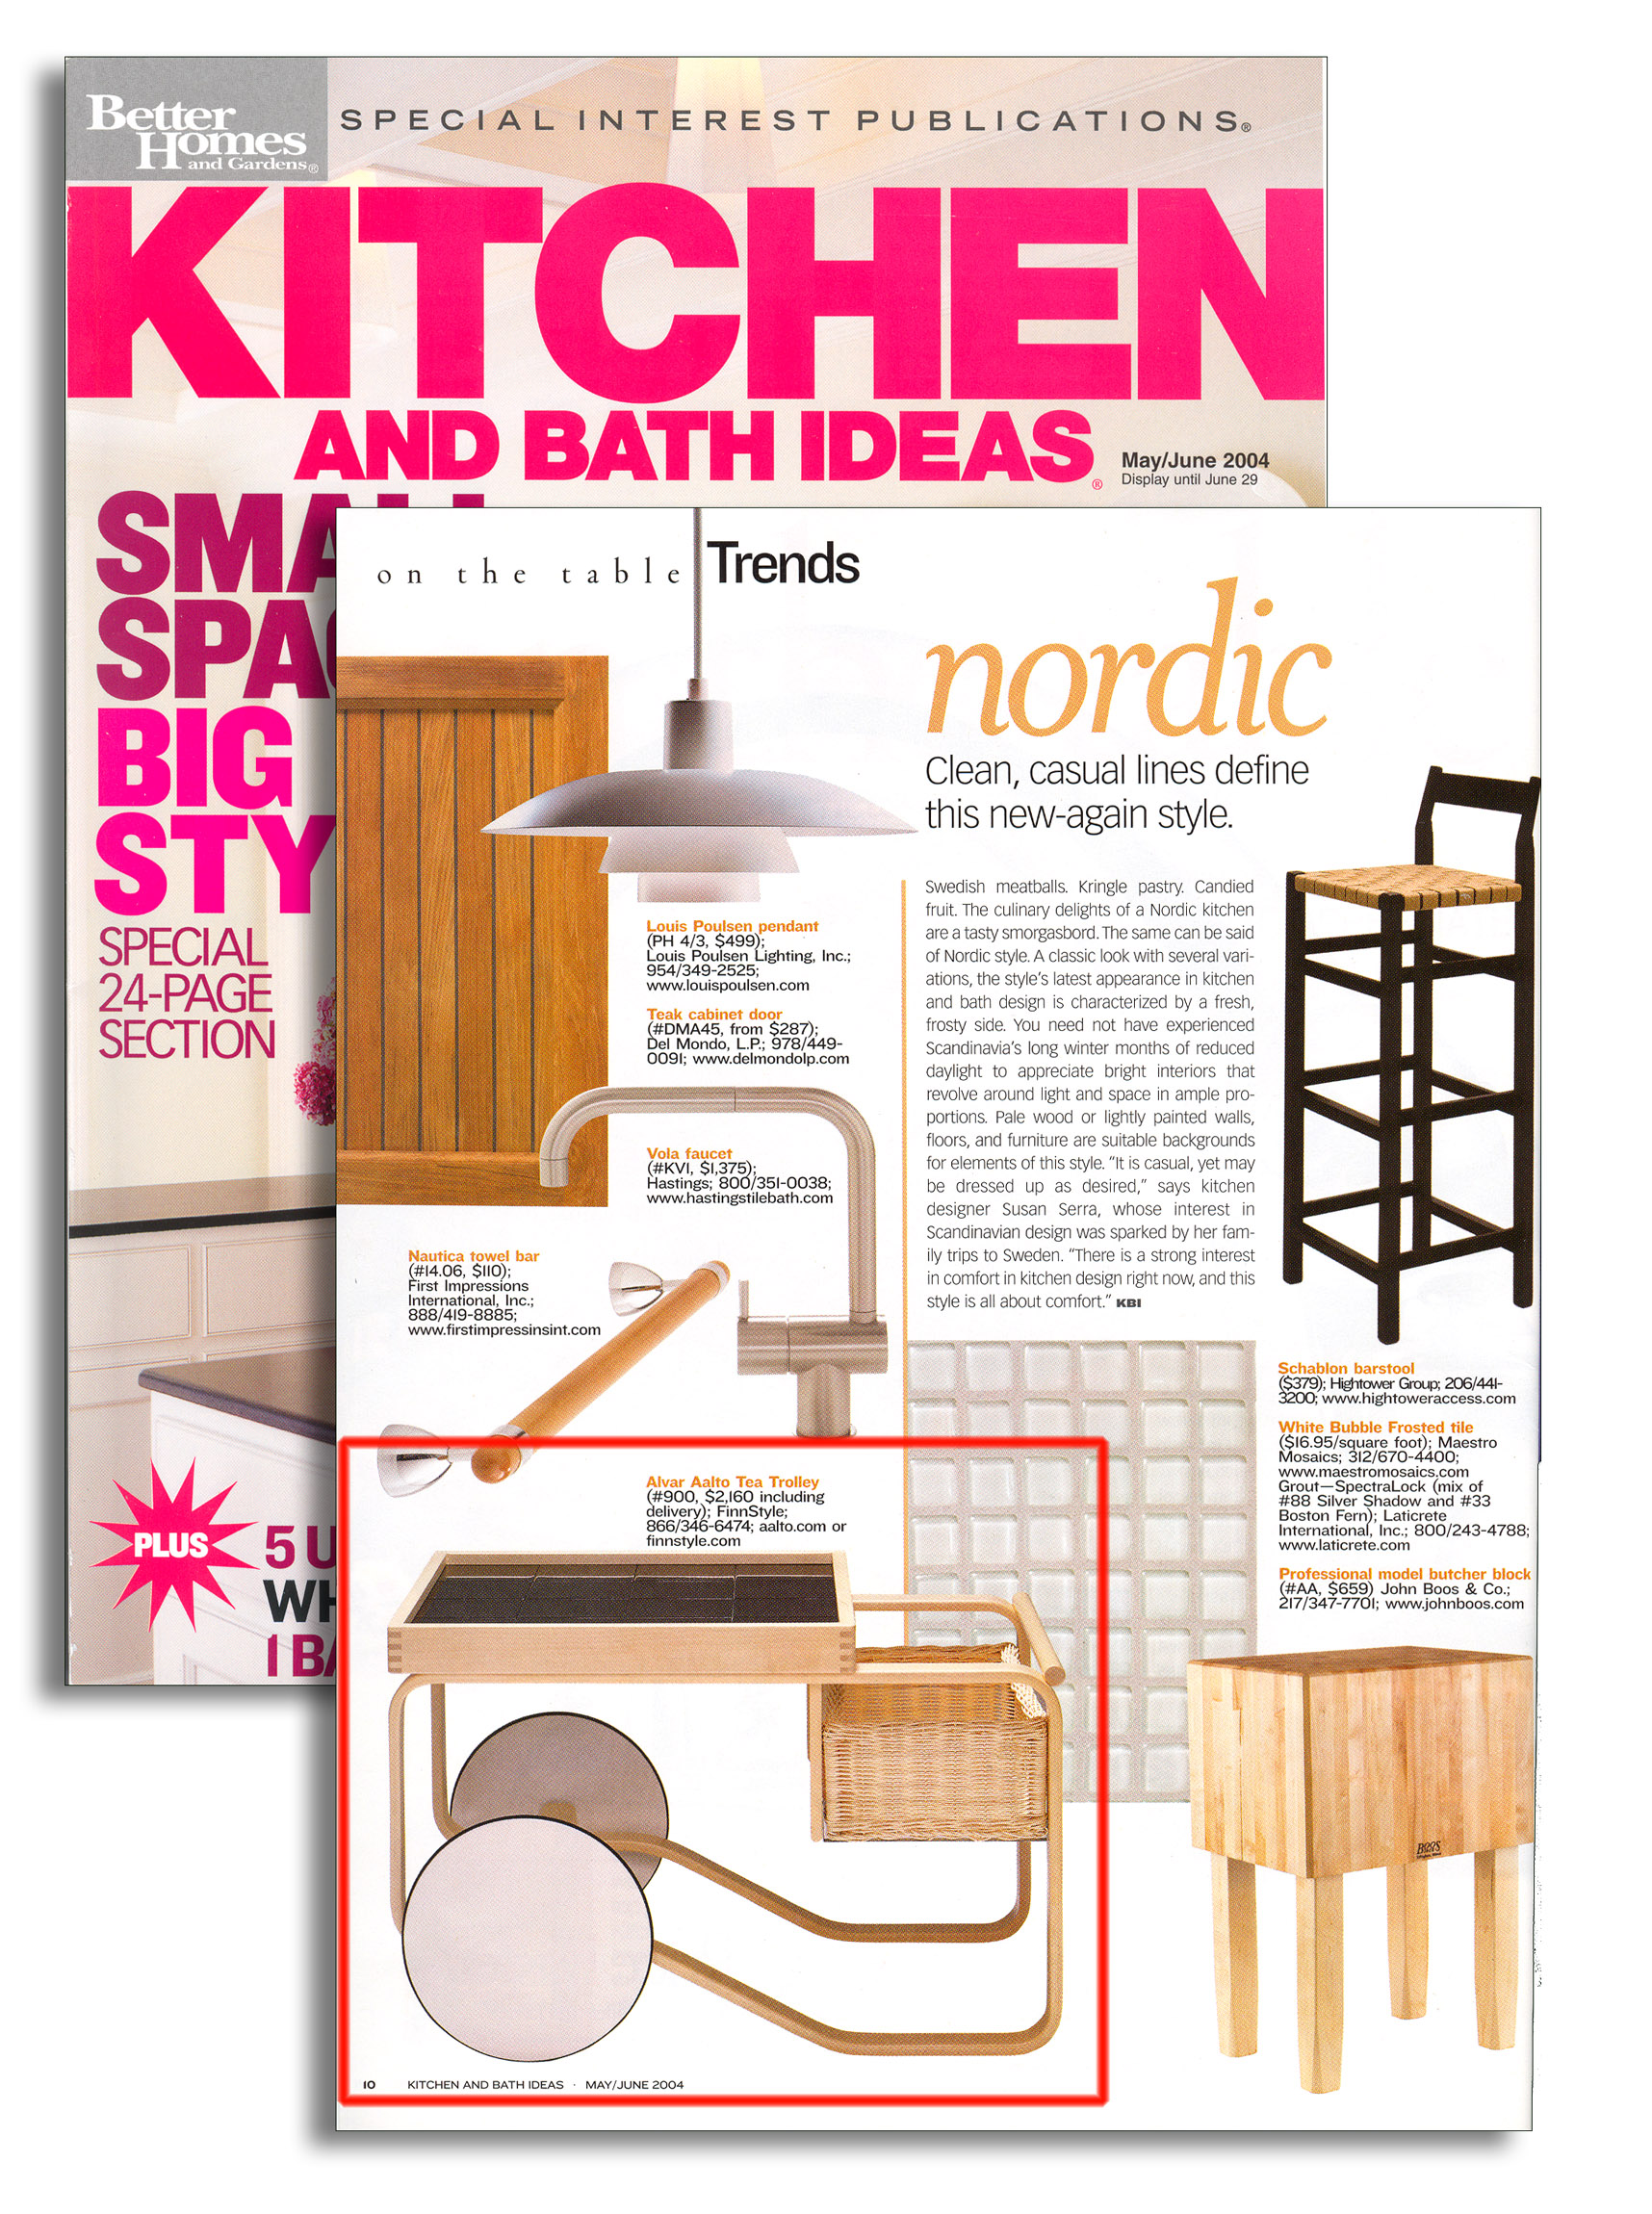 finnstyle press bhg kitchen and bath ideas magazine subscription buy at